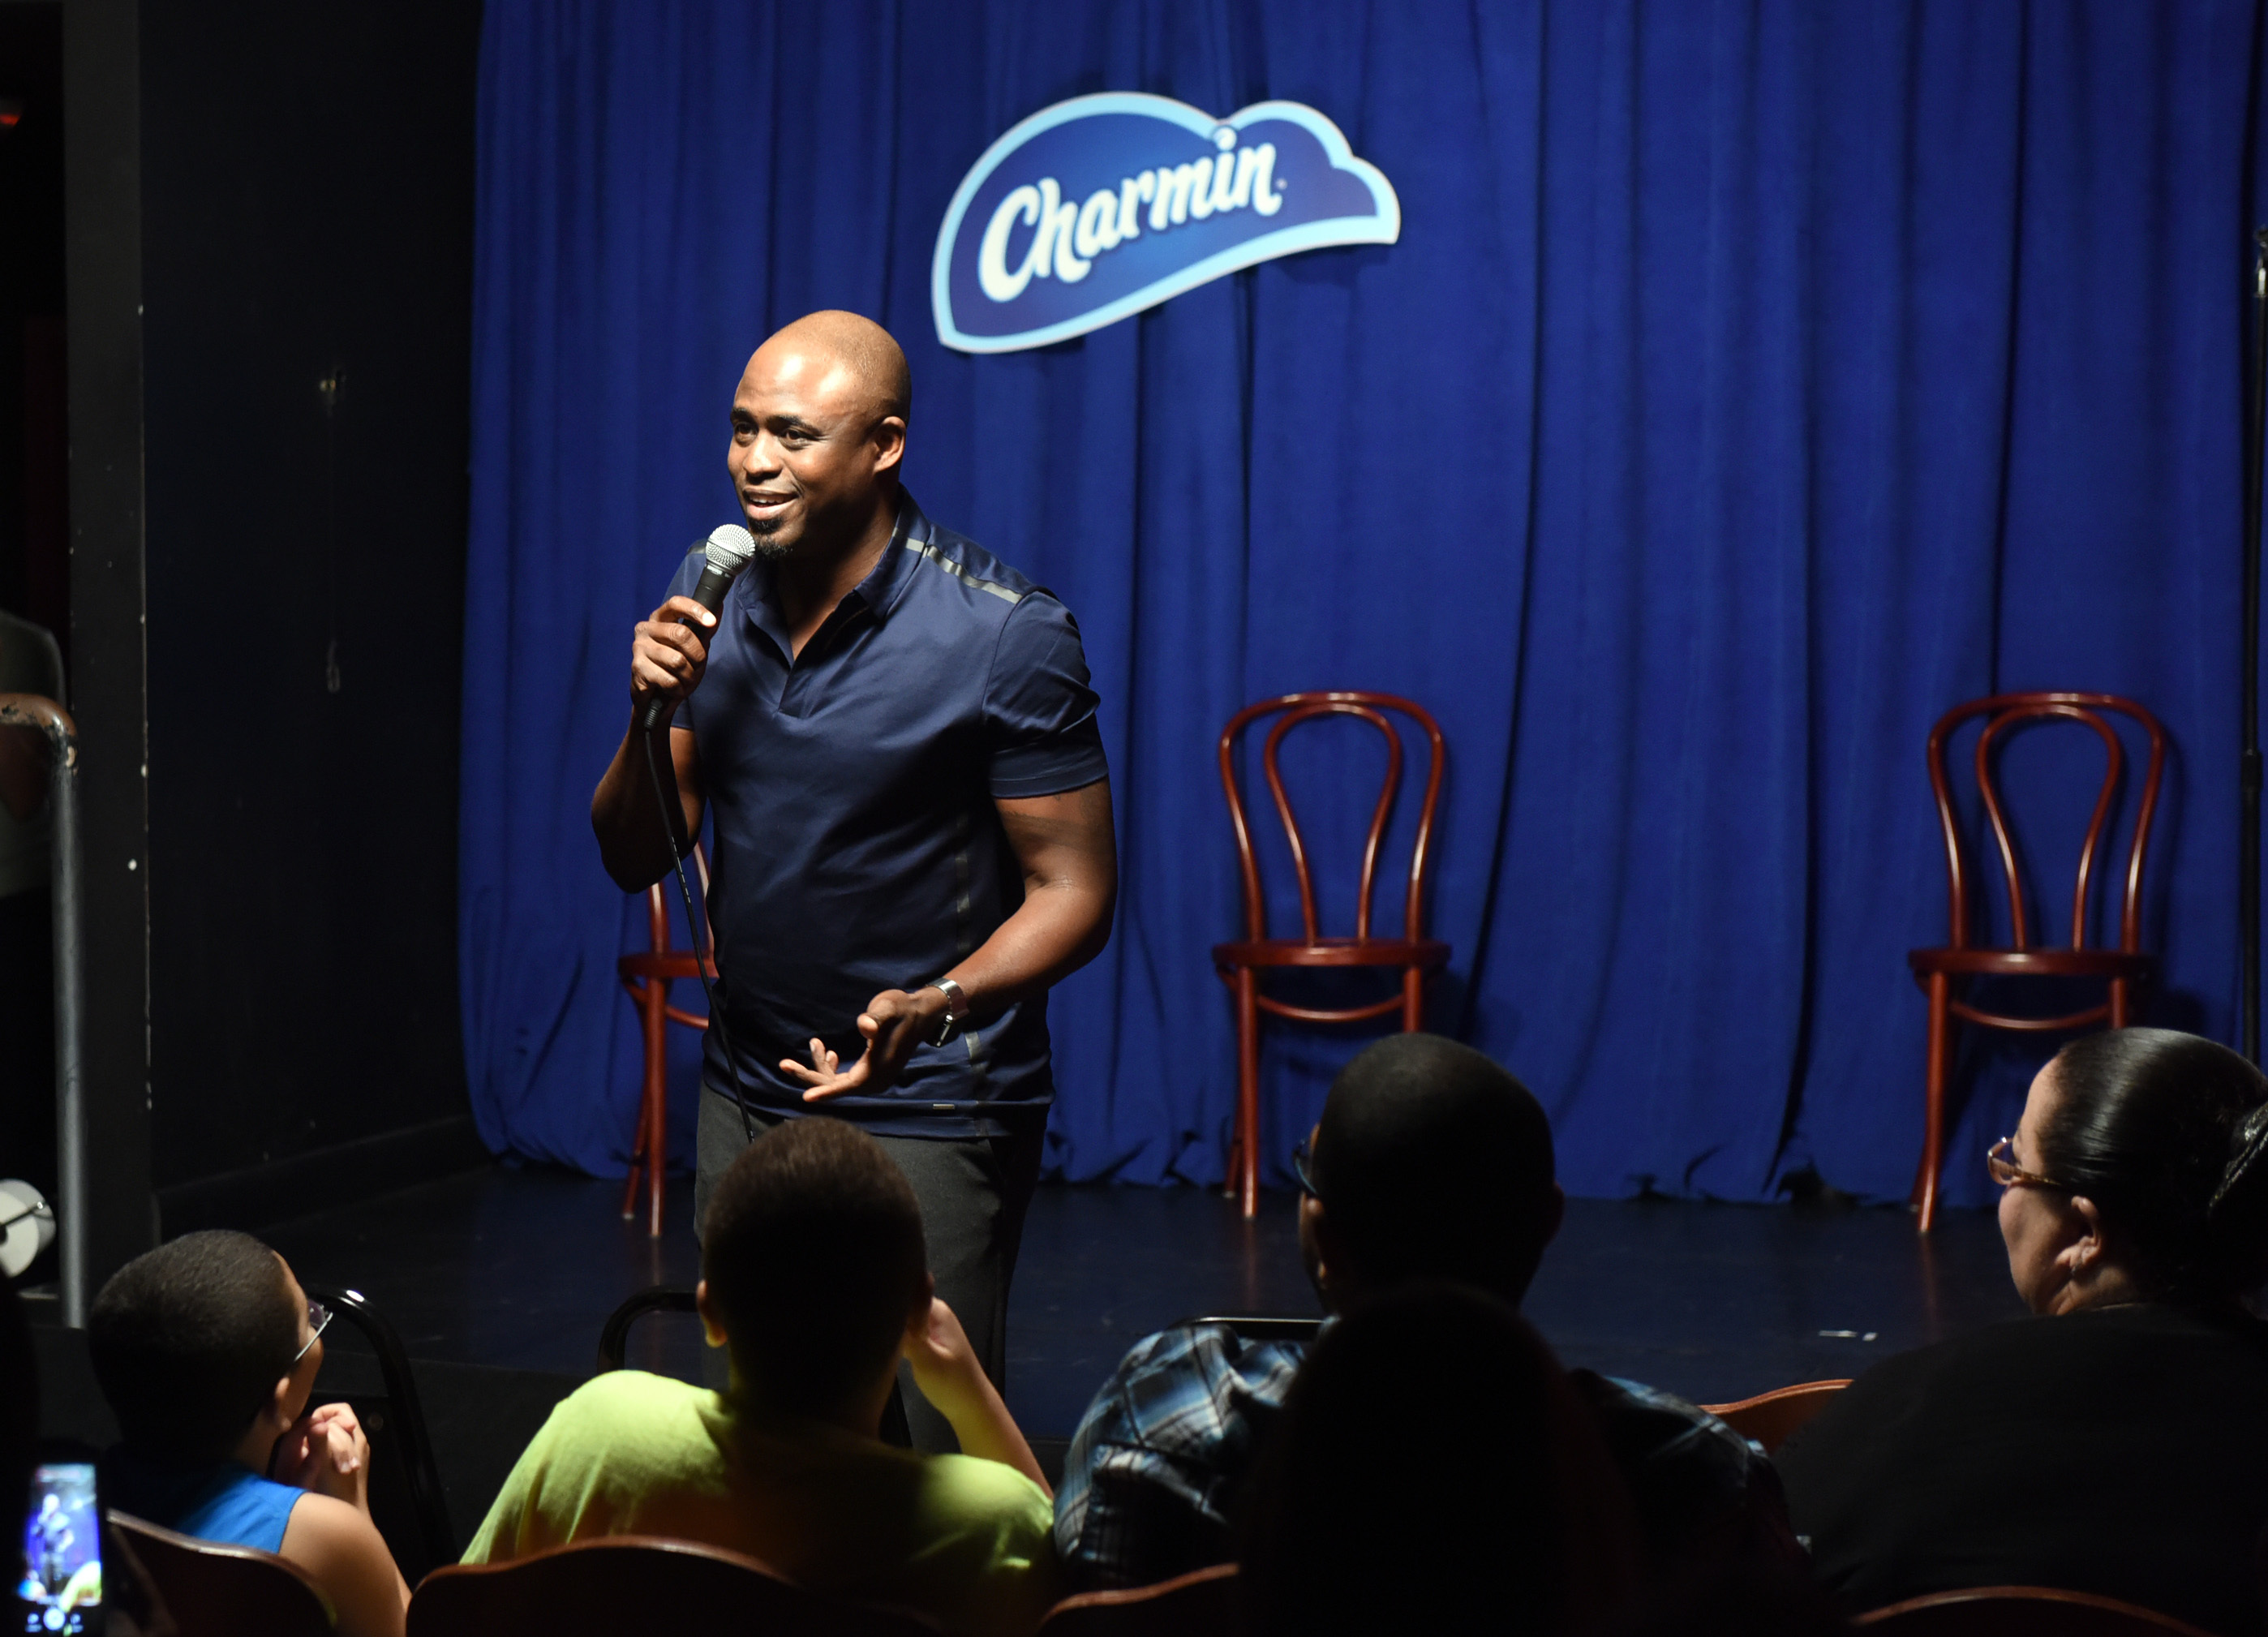 Charmin And Comedian Wayne Brady Host The Keep It Clean Comedy Show To Empower Future Young Comedians Business Wire